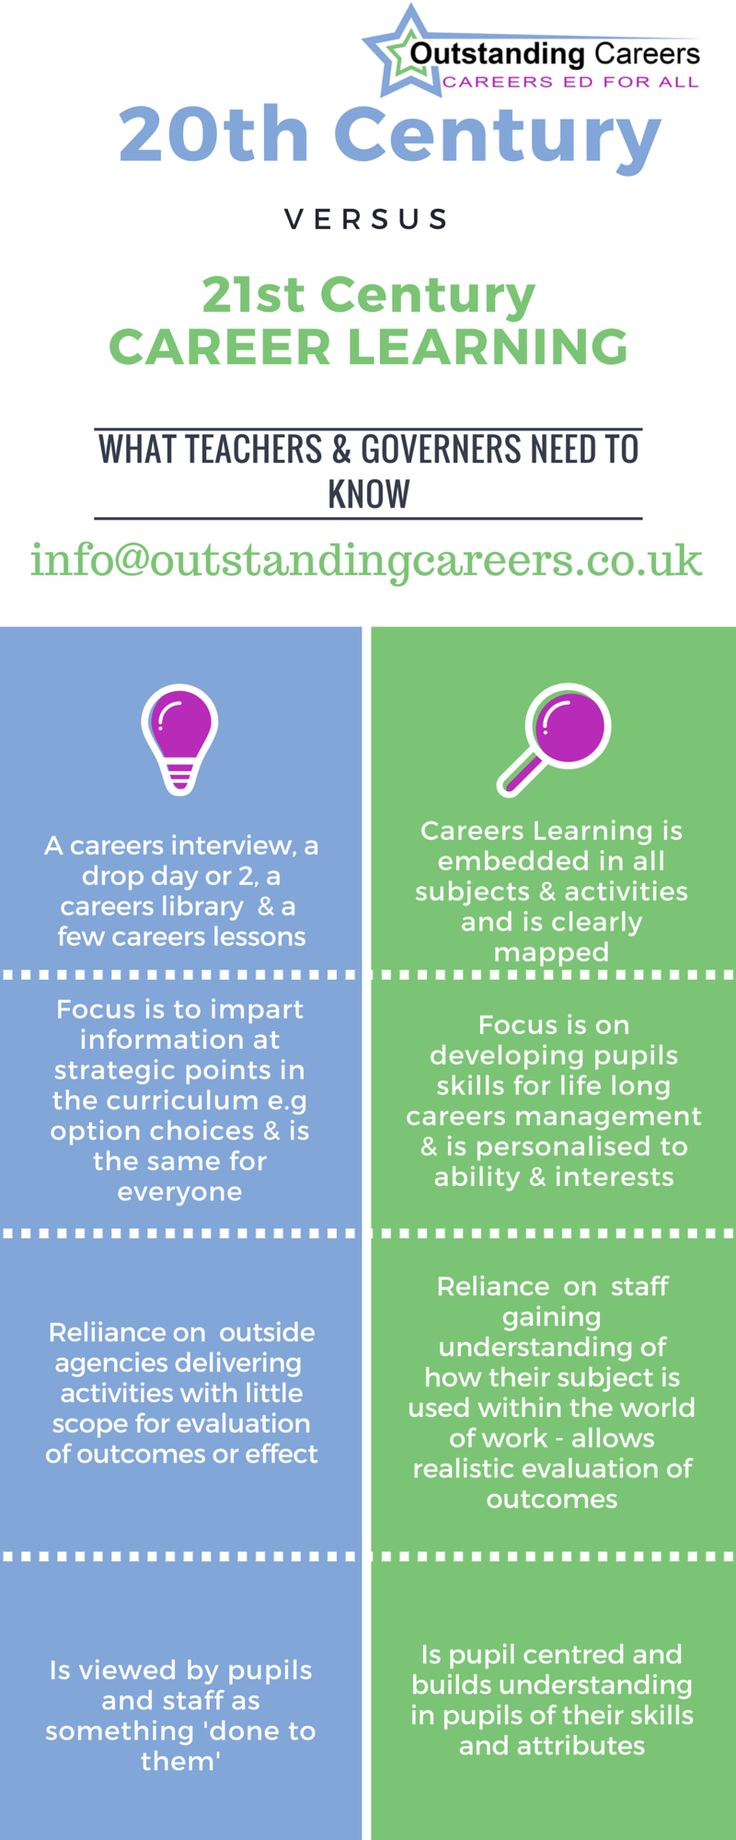 what does 21st century careers learning look like in schools these what does 21st century careers learning look like in schools these days guidance teacher jobs career and 21st century